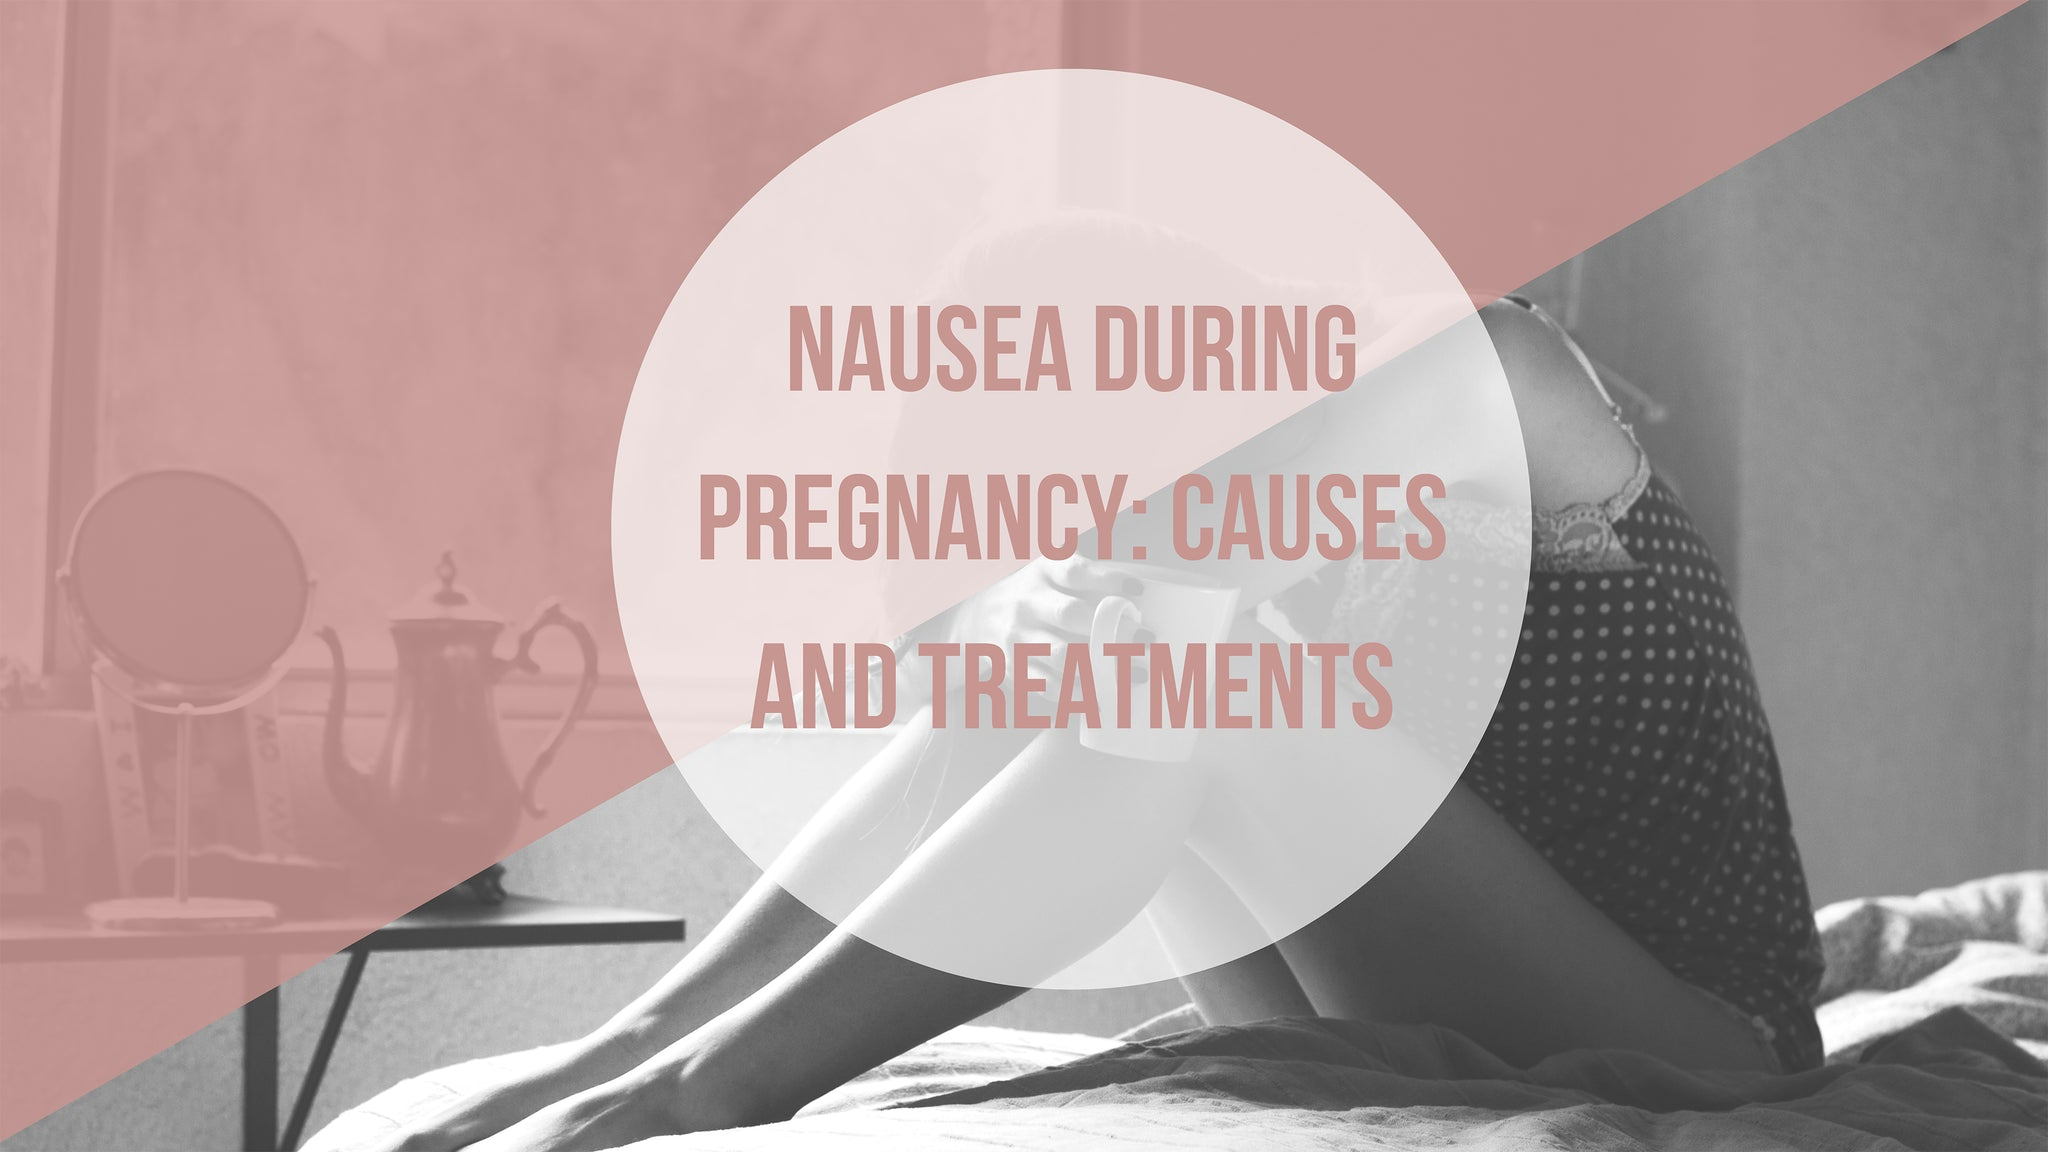 Cause and treatments of nausea during pregnancy